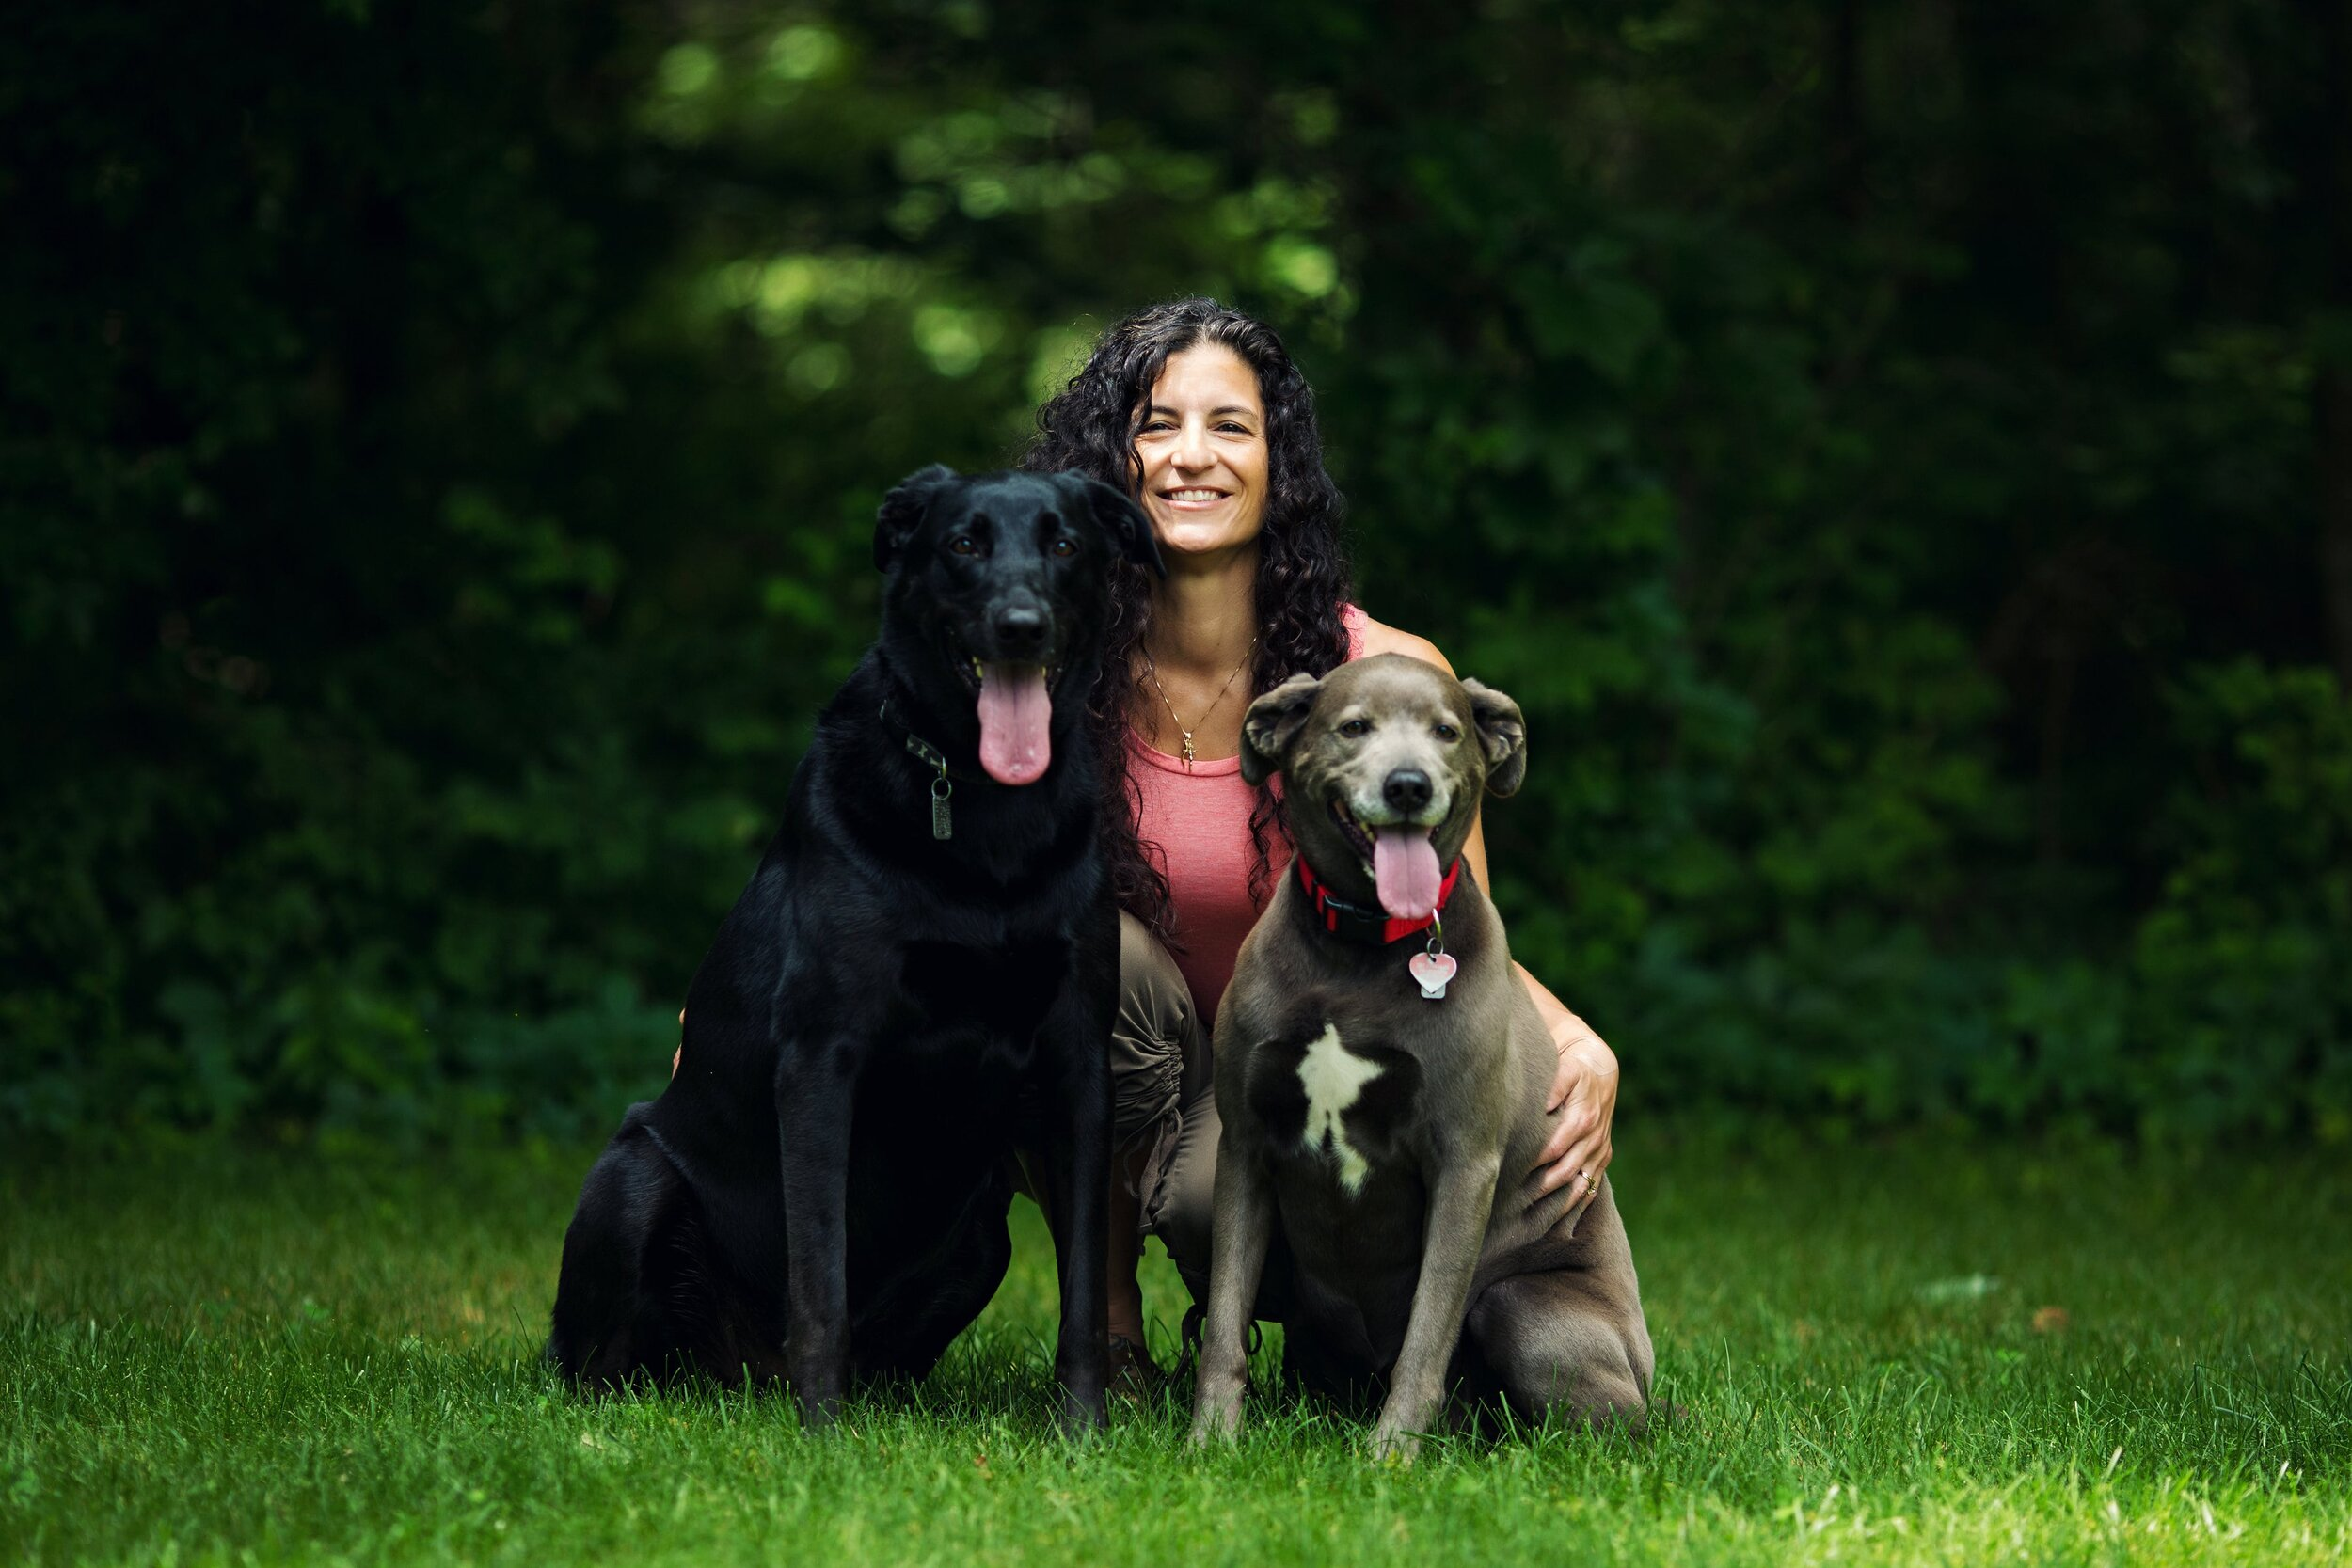 Janine kneeling in a field with her two dogs, Zoey and Dakota